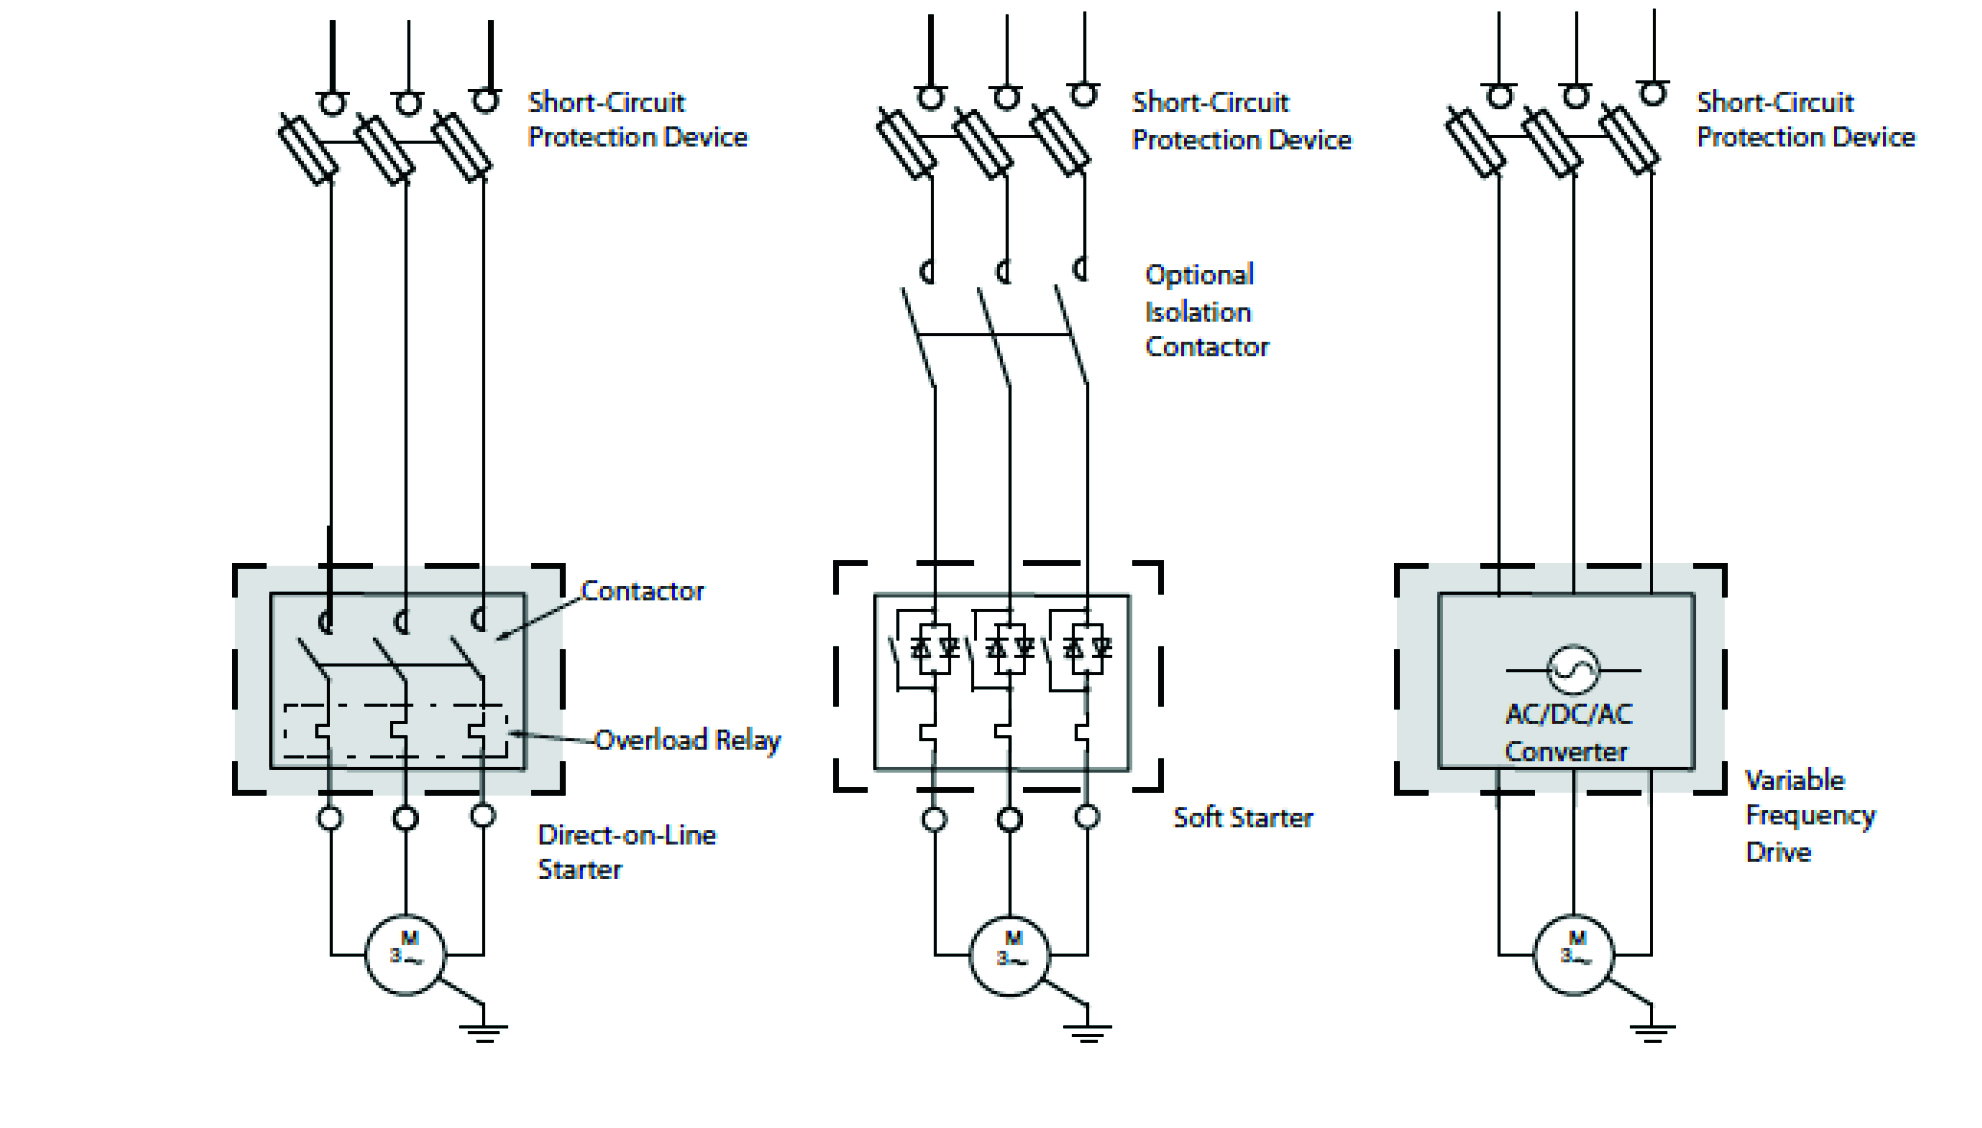 Vfd Starter Circuit Diagram - Wiring Diagrams on